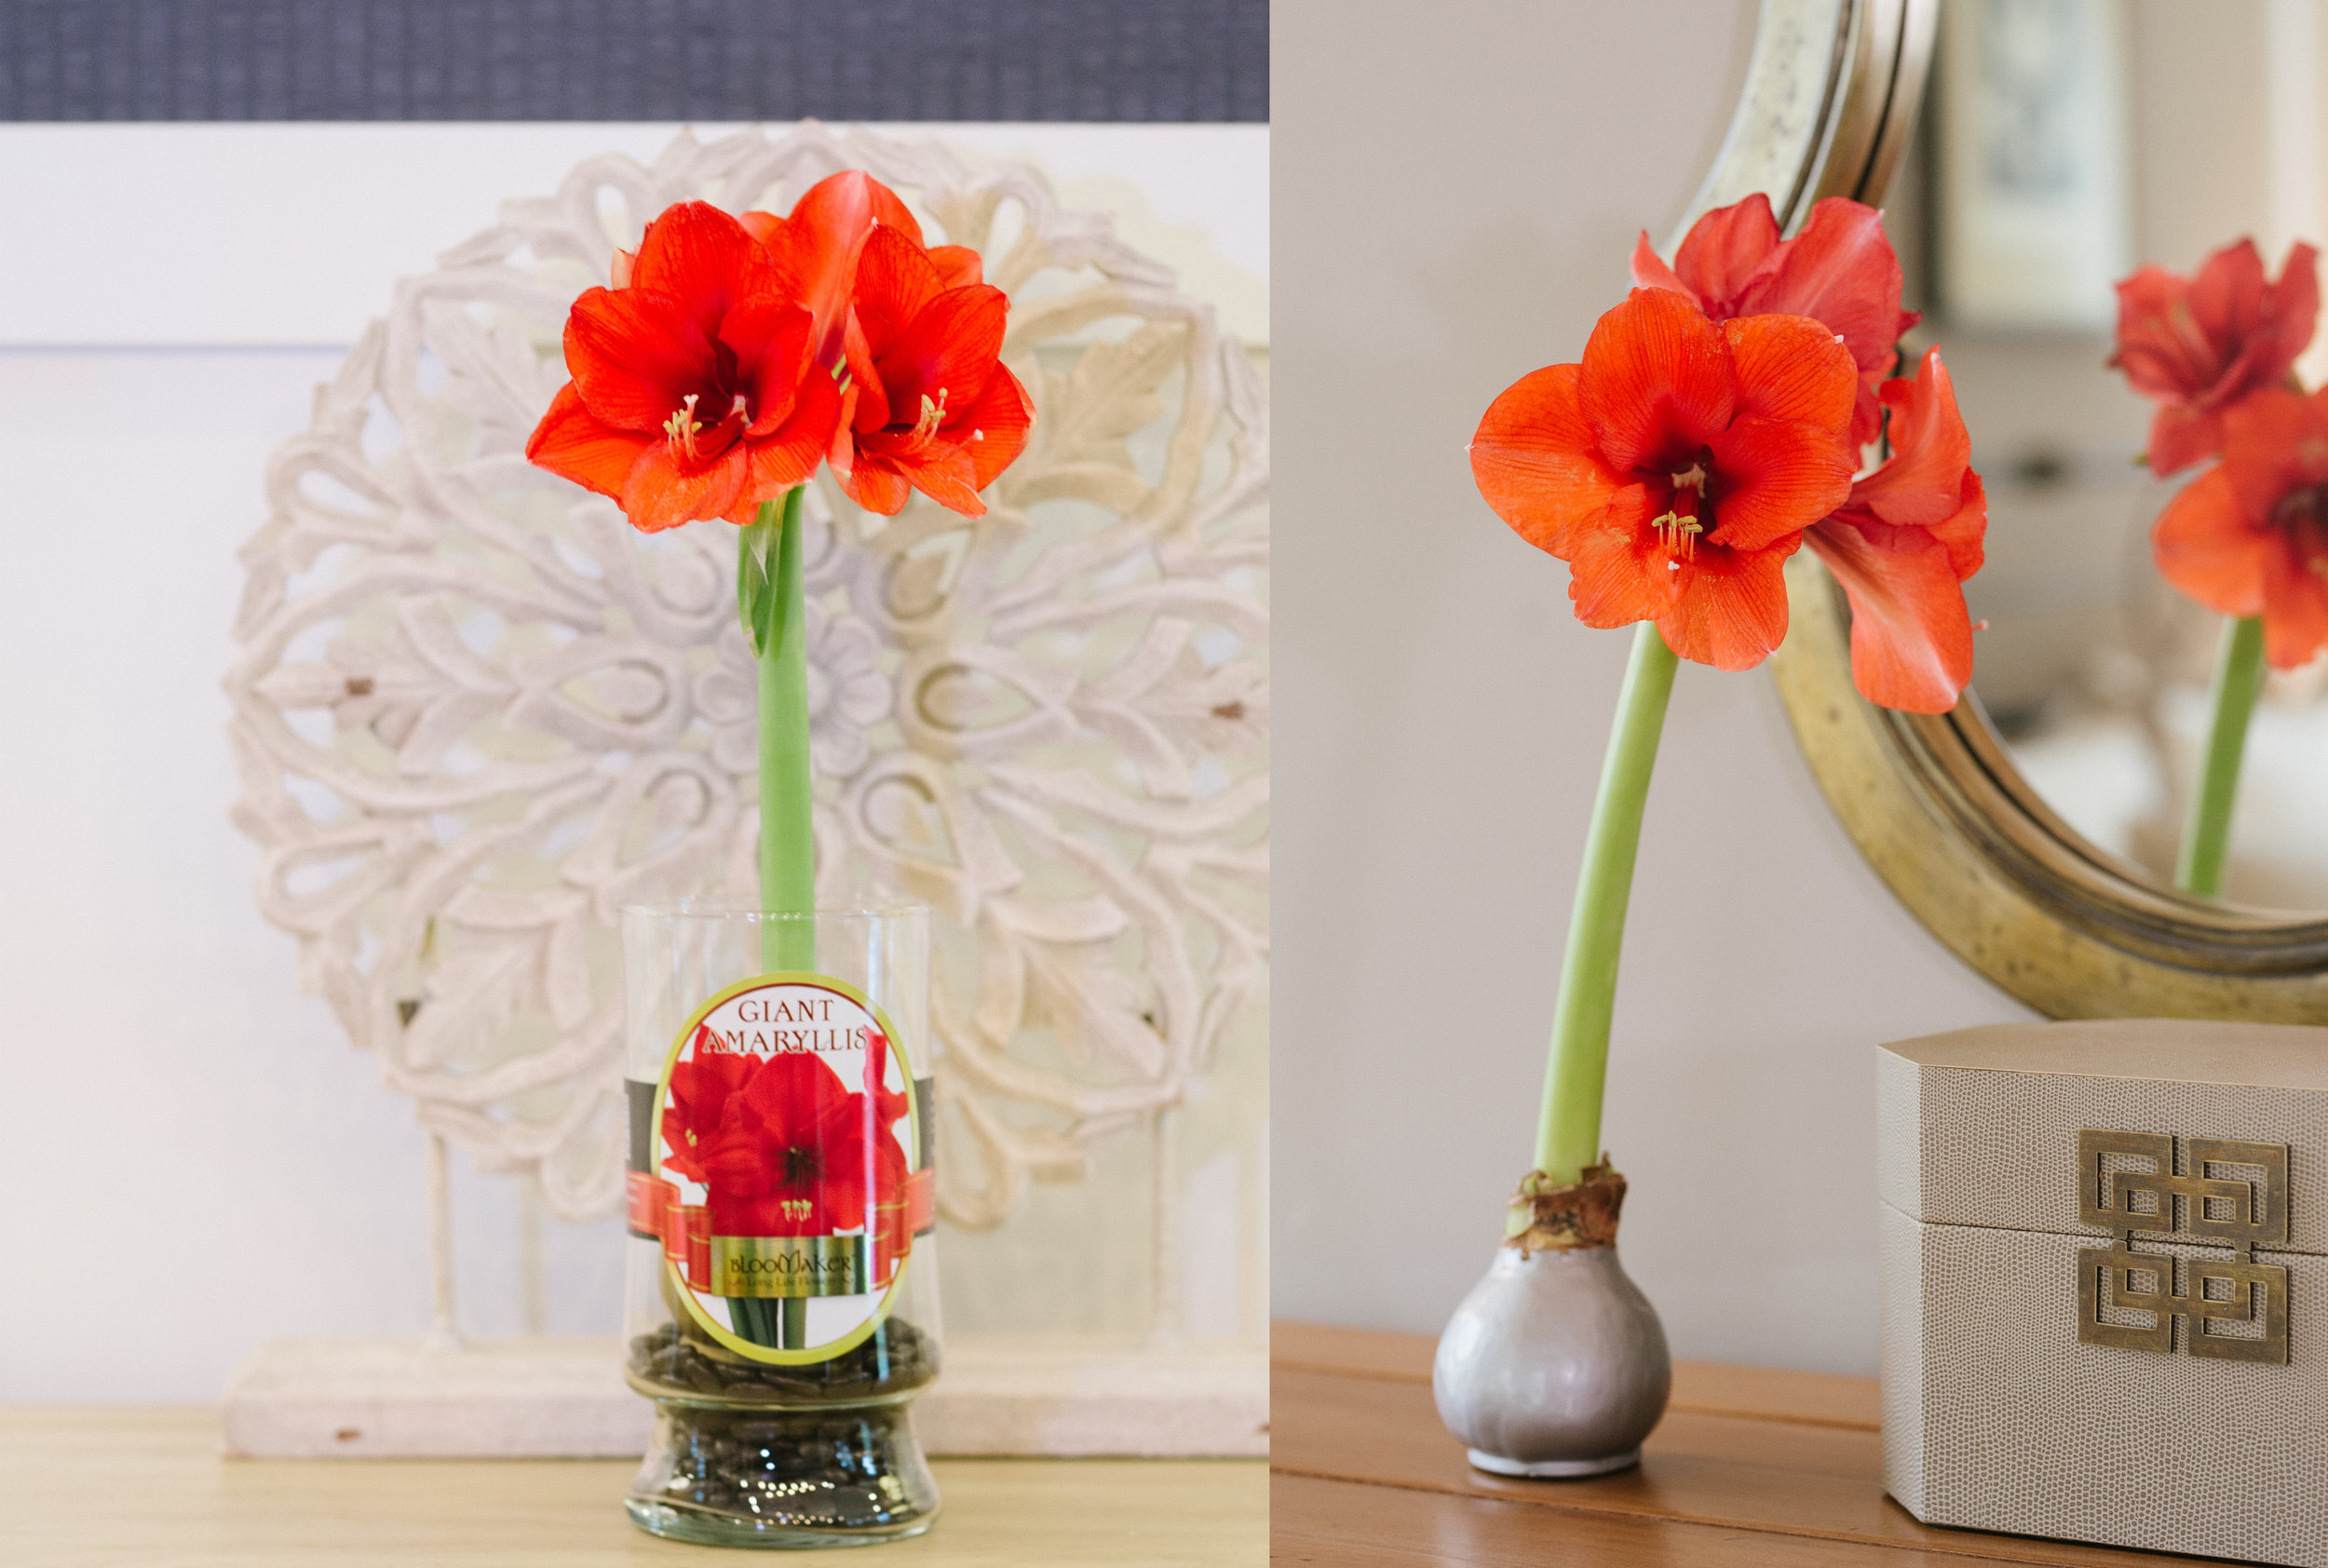 Giant Amaryllis - Giant Amaryllis love to rise to the occasion, make their presence known, and never fail to surprise. Our extra-large Giant Amaryllis bulbs require no care and can produce multiple gorgeous blooms. They come in two packages, waxed or in a vase with smooth pebbles. Keep them indoors away from direct sunlight, and don't let them get too hot. They make beautiful hearth and centerpiece decorations and are equally as wonderful to give as gifts. This holiday season, consider a Giant Amaryllis in place of that poinsettia.Visit our FAQ page for tips on care.Amaryllis Product Specifications